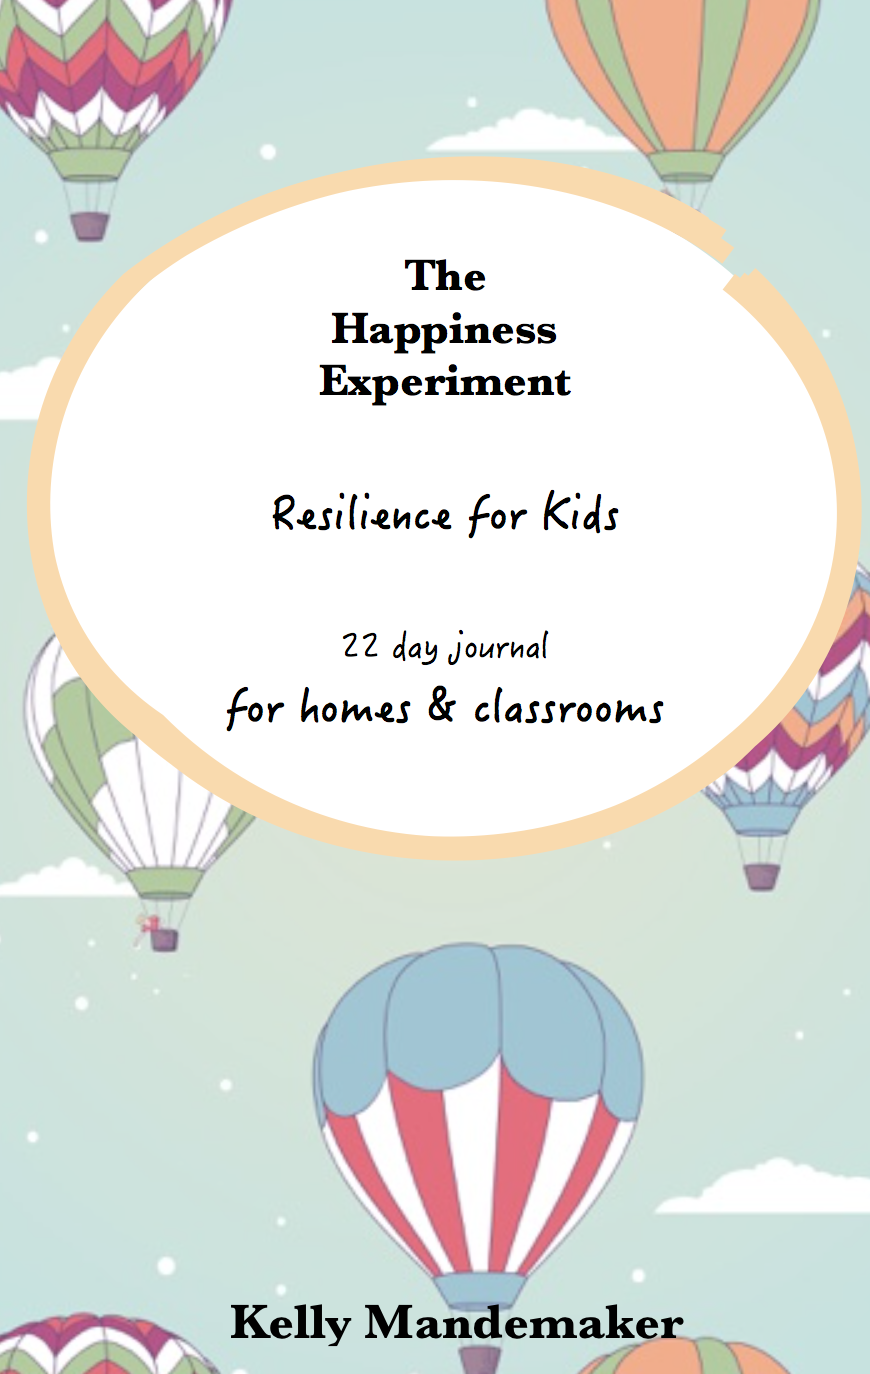 Resilient Kids are Made. Not Born. - Welcome! I am so excited to be here, WITH YOU.If you are reading this, there's one thing we already have in common. We both know the value of personal growth in our kids. Given that 1 in 7 kids are affected by mental illness in a given year, it's our responsibility to impart simple, yet powerful skills to help them overcome the challenging days. And give them a tool they can draw on at the blink of an eye. This is what you will be getting in this inspirational and engaging program that can be done over 22 consecutive days, an entire term, or as part of an classroom integrated unit ( if you are a wonderful teacher reading this).This is the ULTIMATE classroom program for students aged 4+ which has been delivered to over 1700 educators and parents' inboxes globally.Download your A4, full colour, 52 page program at a click of a button, delivered into your inbox instantly. It is licensed for up to 30 students and can be printed in colour or b&w.